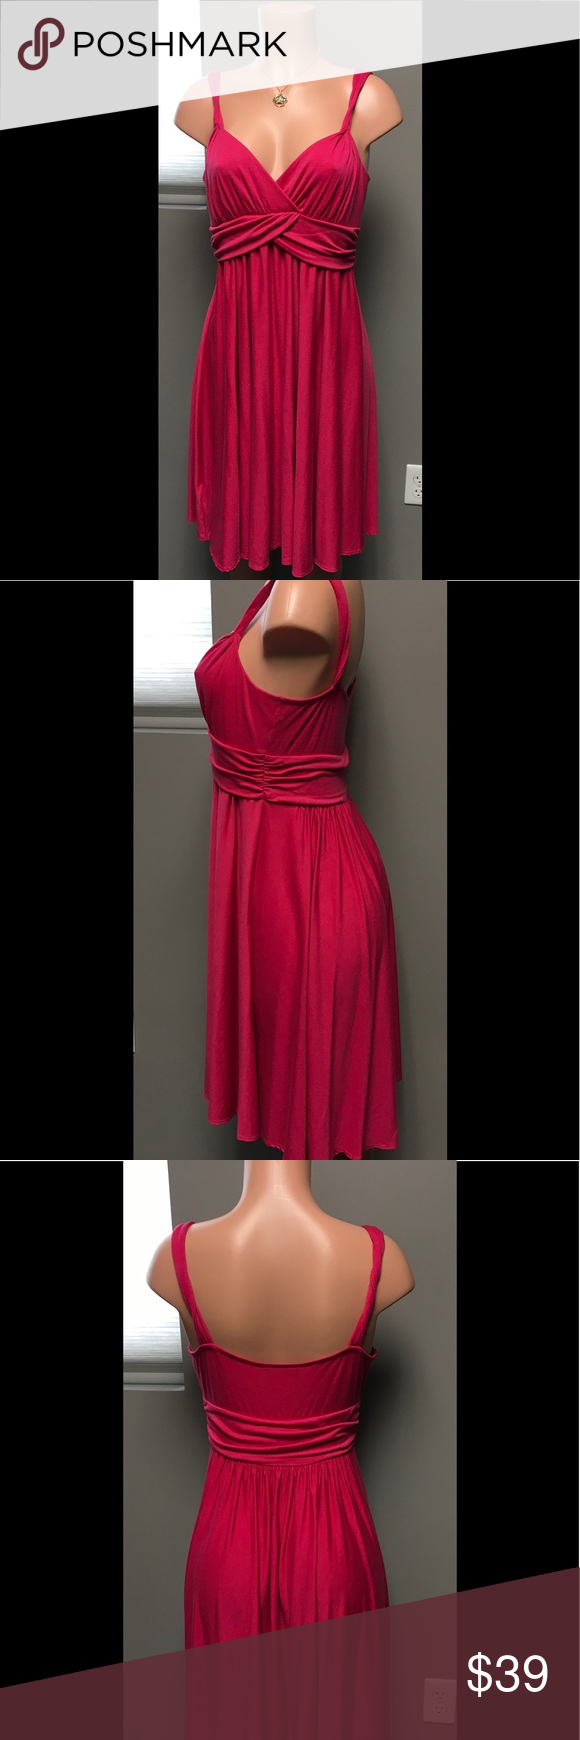 LOFT dress Beautiful hot pink SEXY dress...great for summer date night!  Excellent condition LOFT Dresses Midi